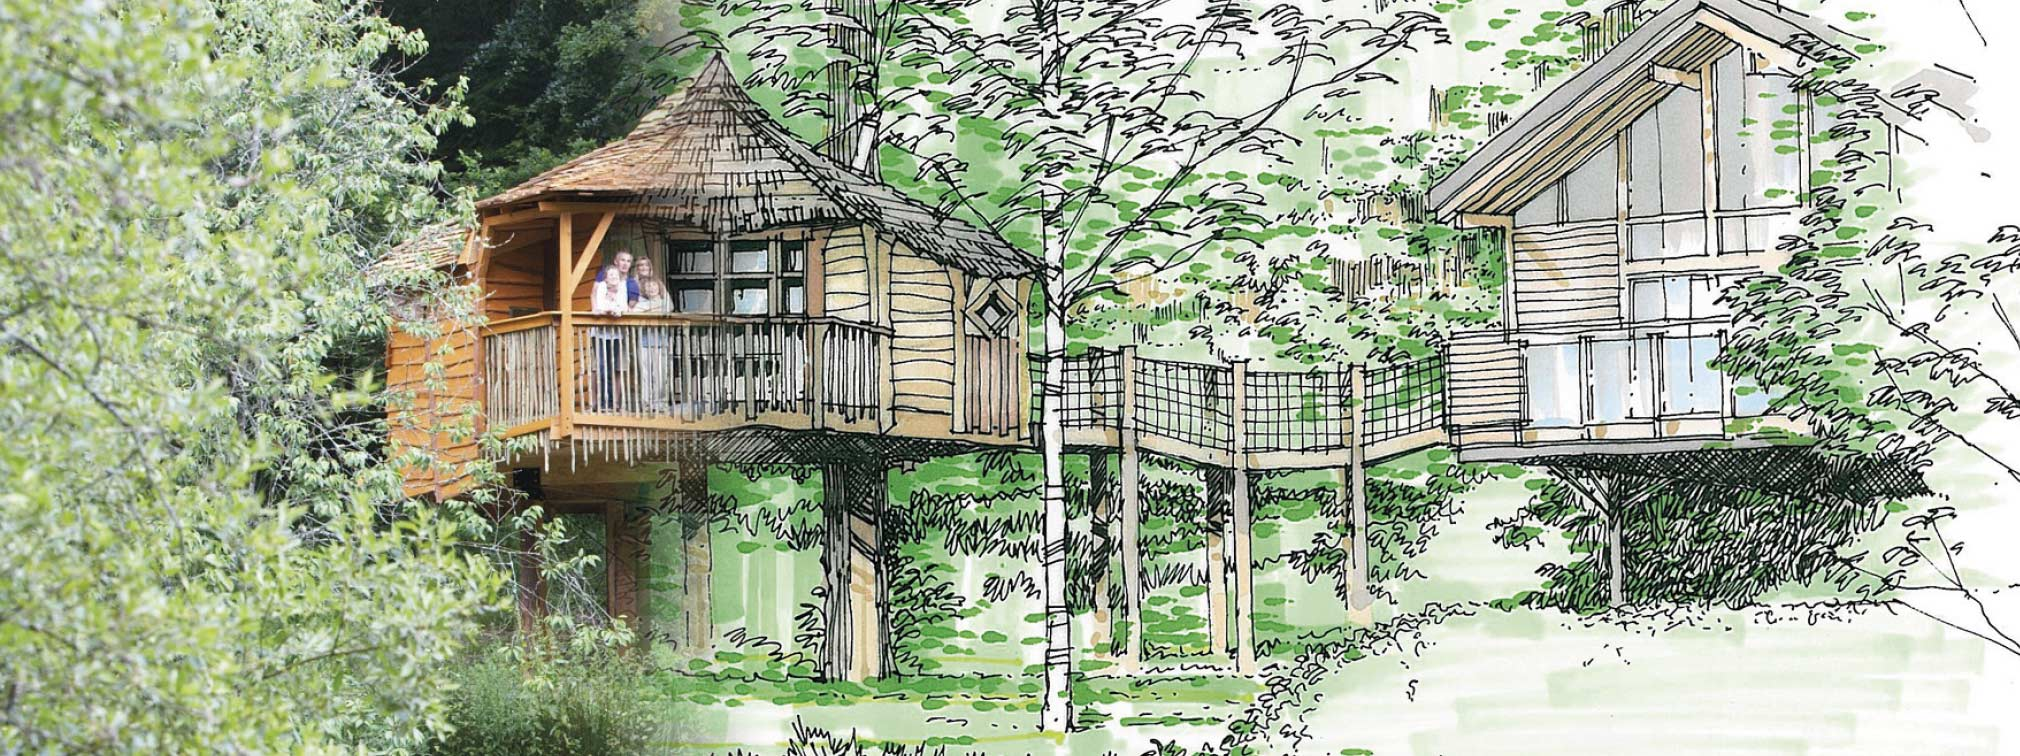 Treehouse development